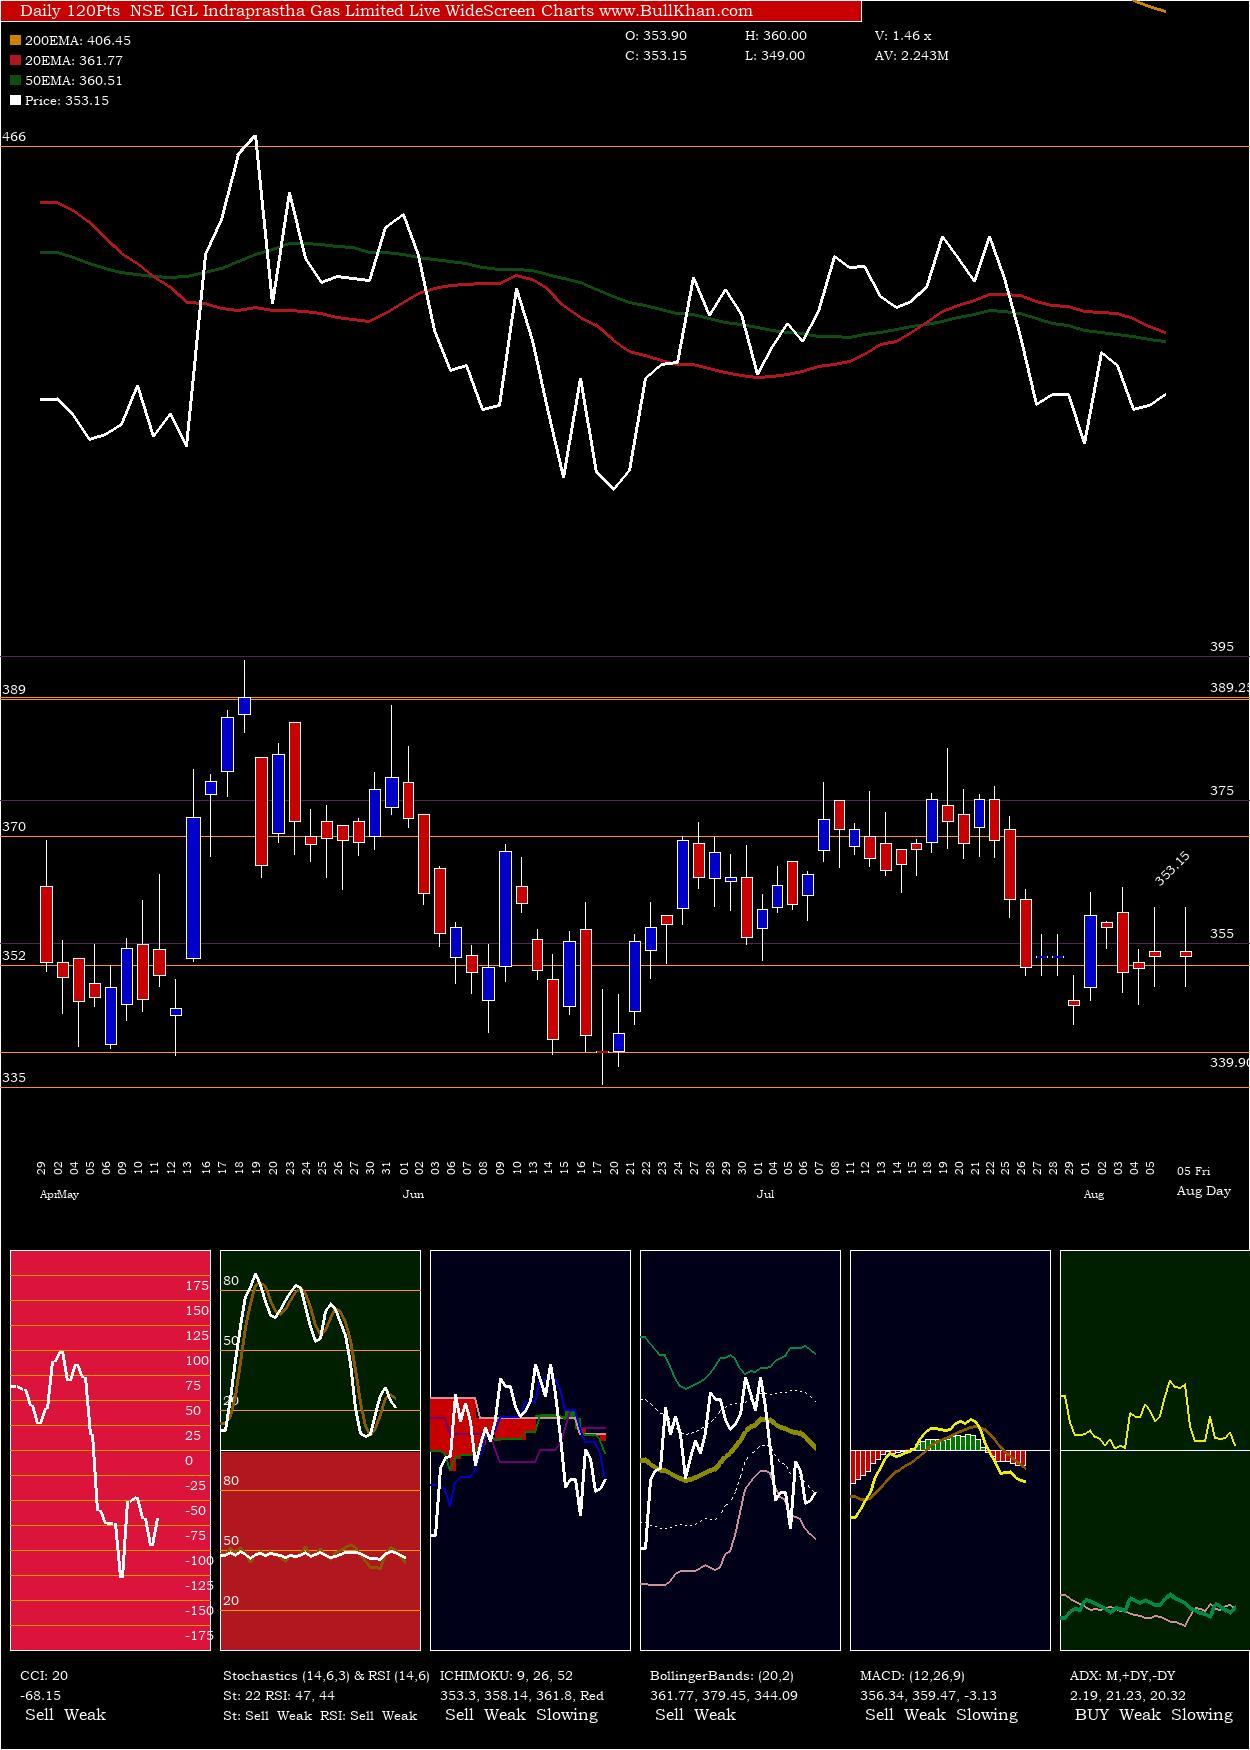 Indraprastha Gas Limited charts and indicators